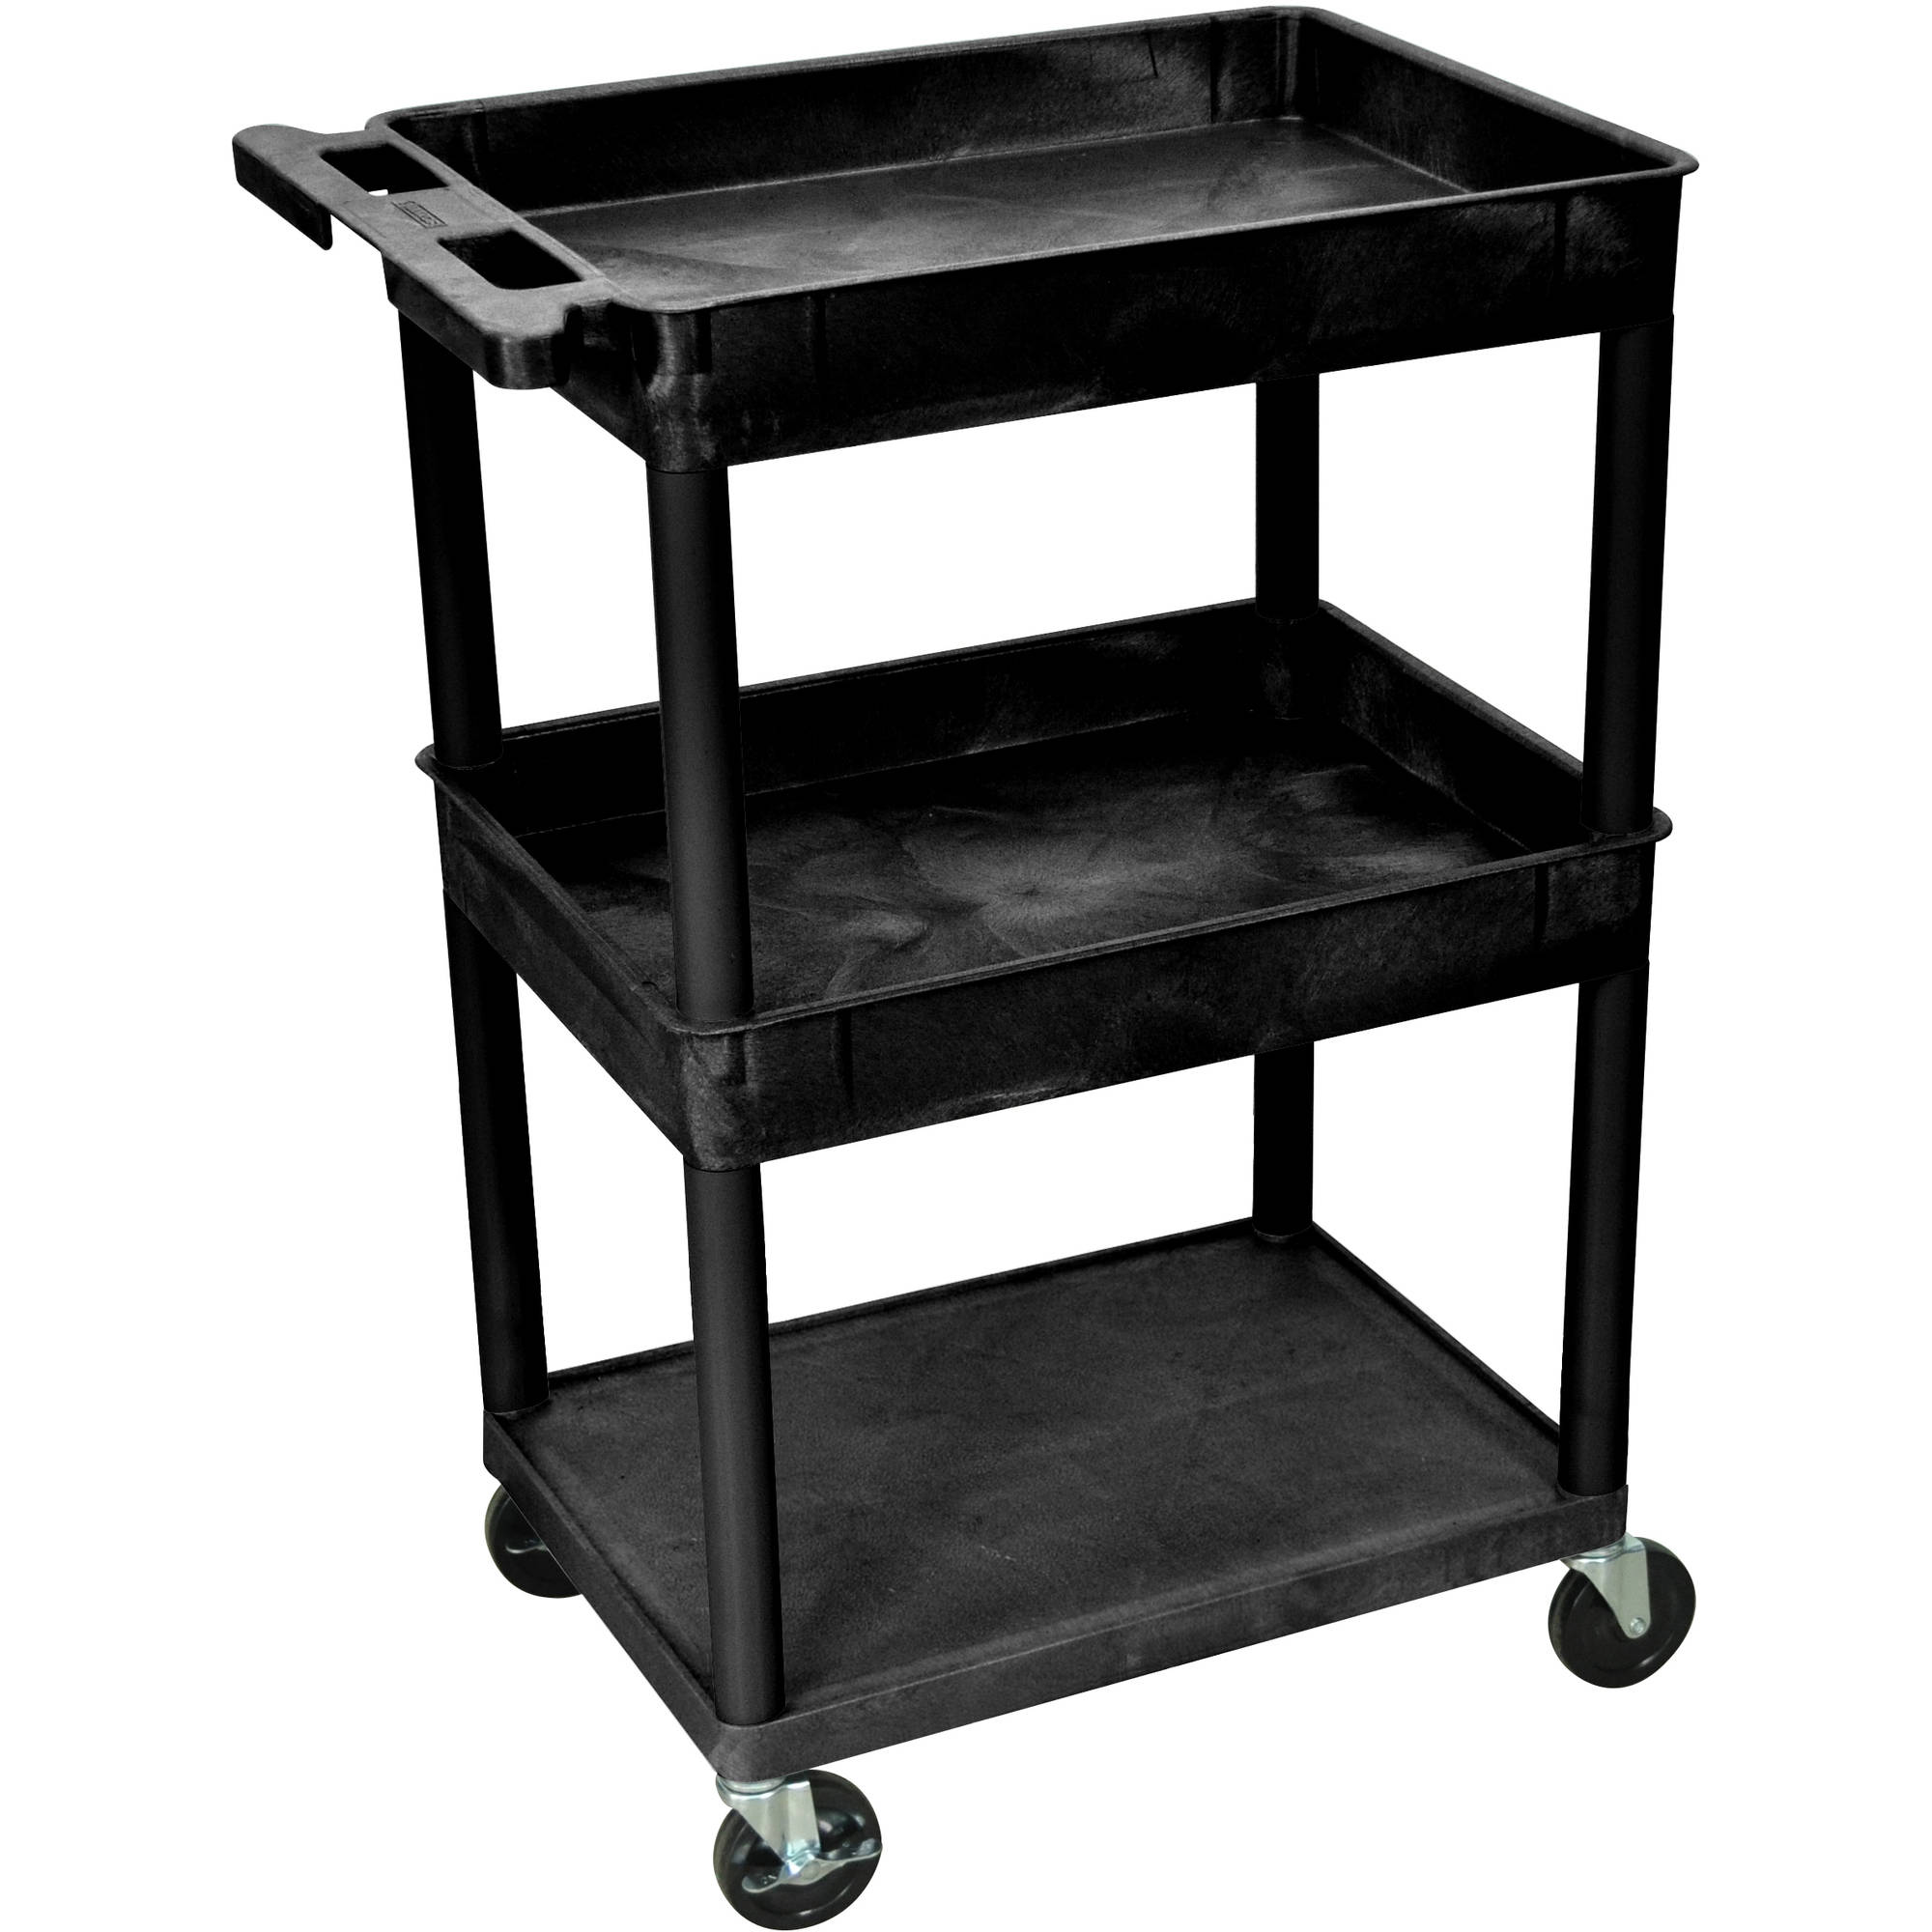 Luxor Top and Middle Tub Shelf and Flat Bottom Shelf Cart